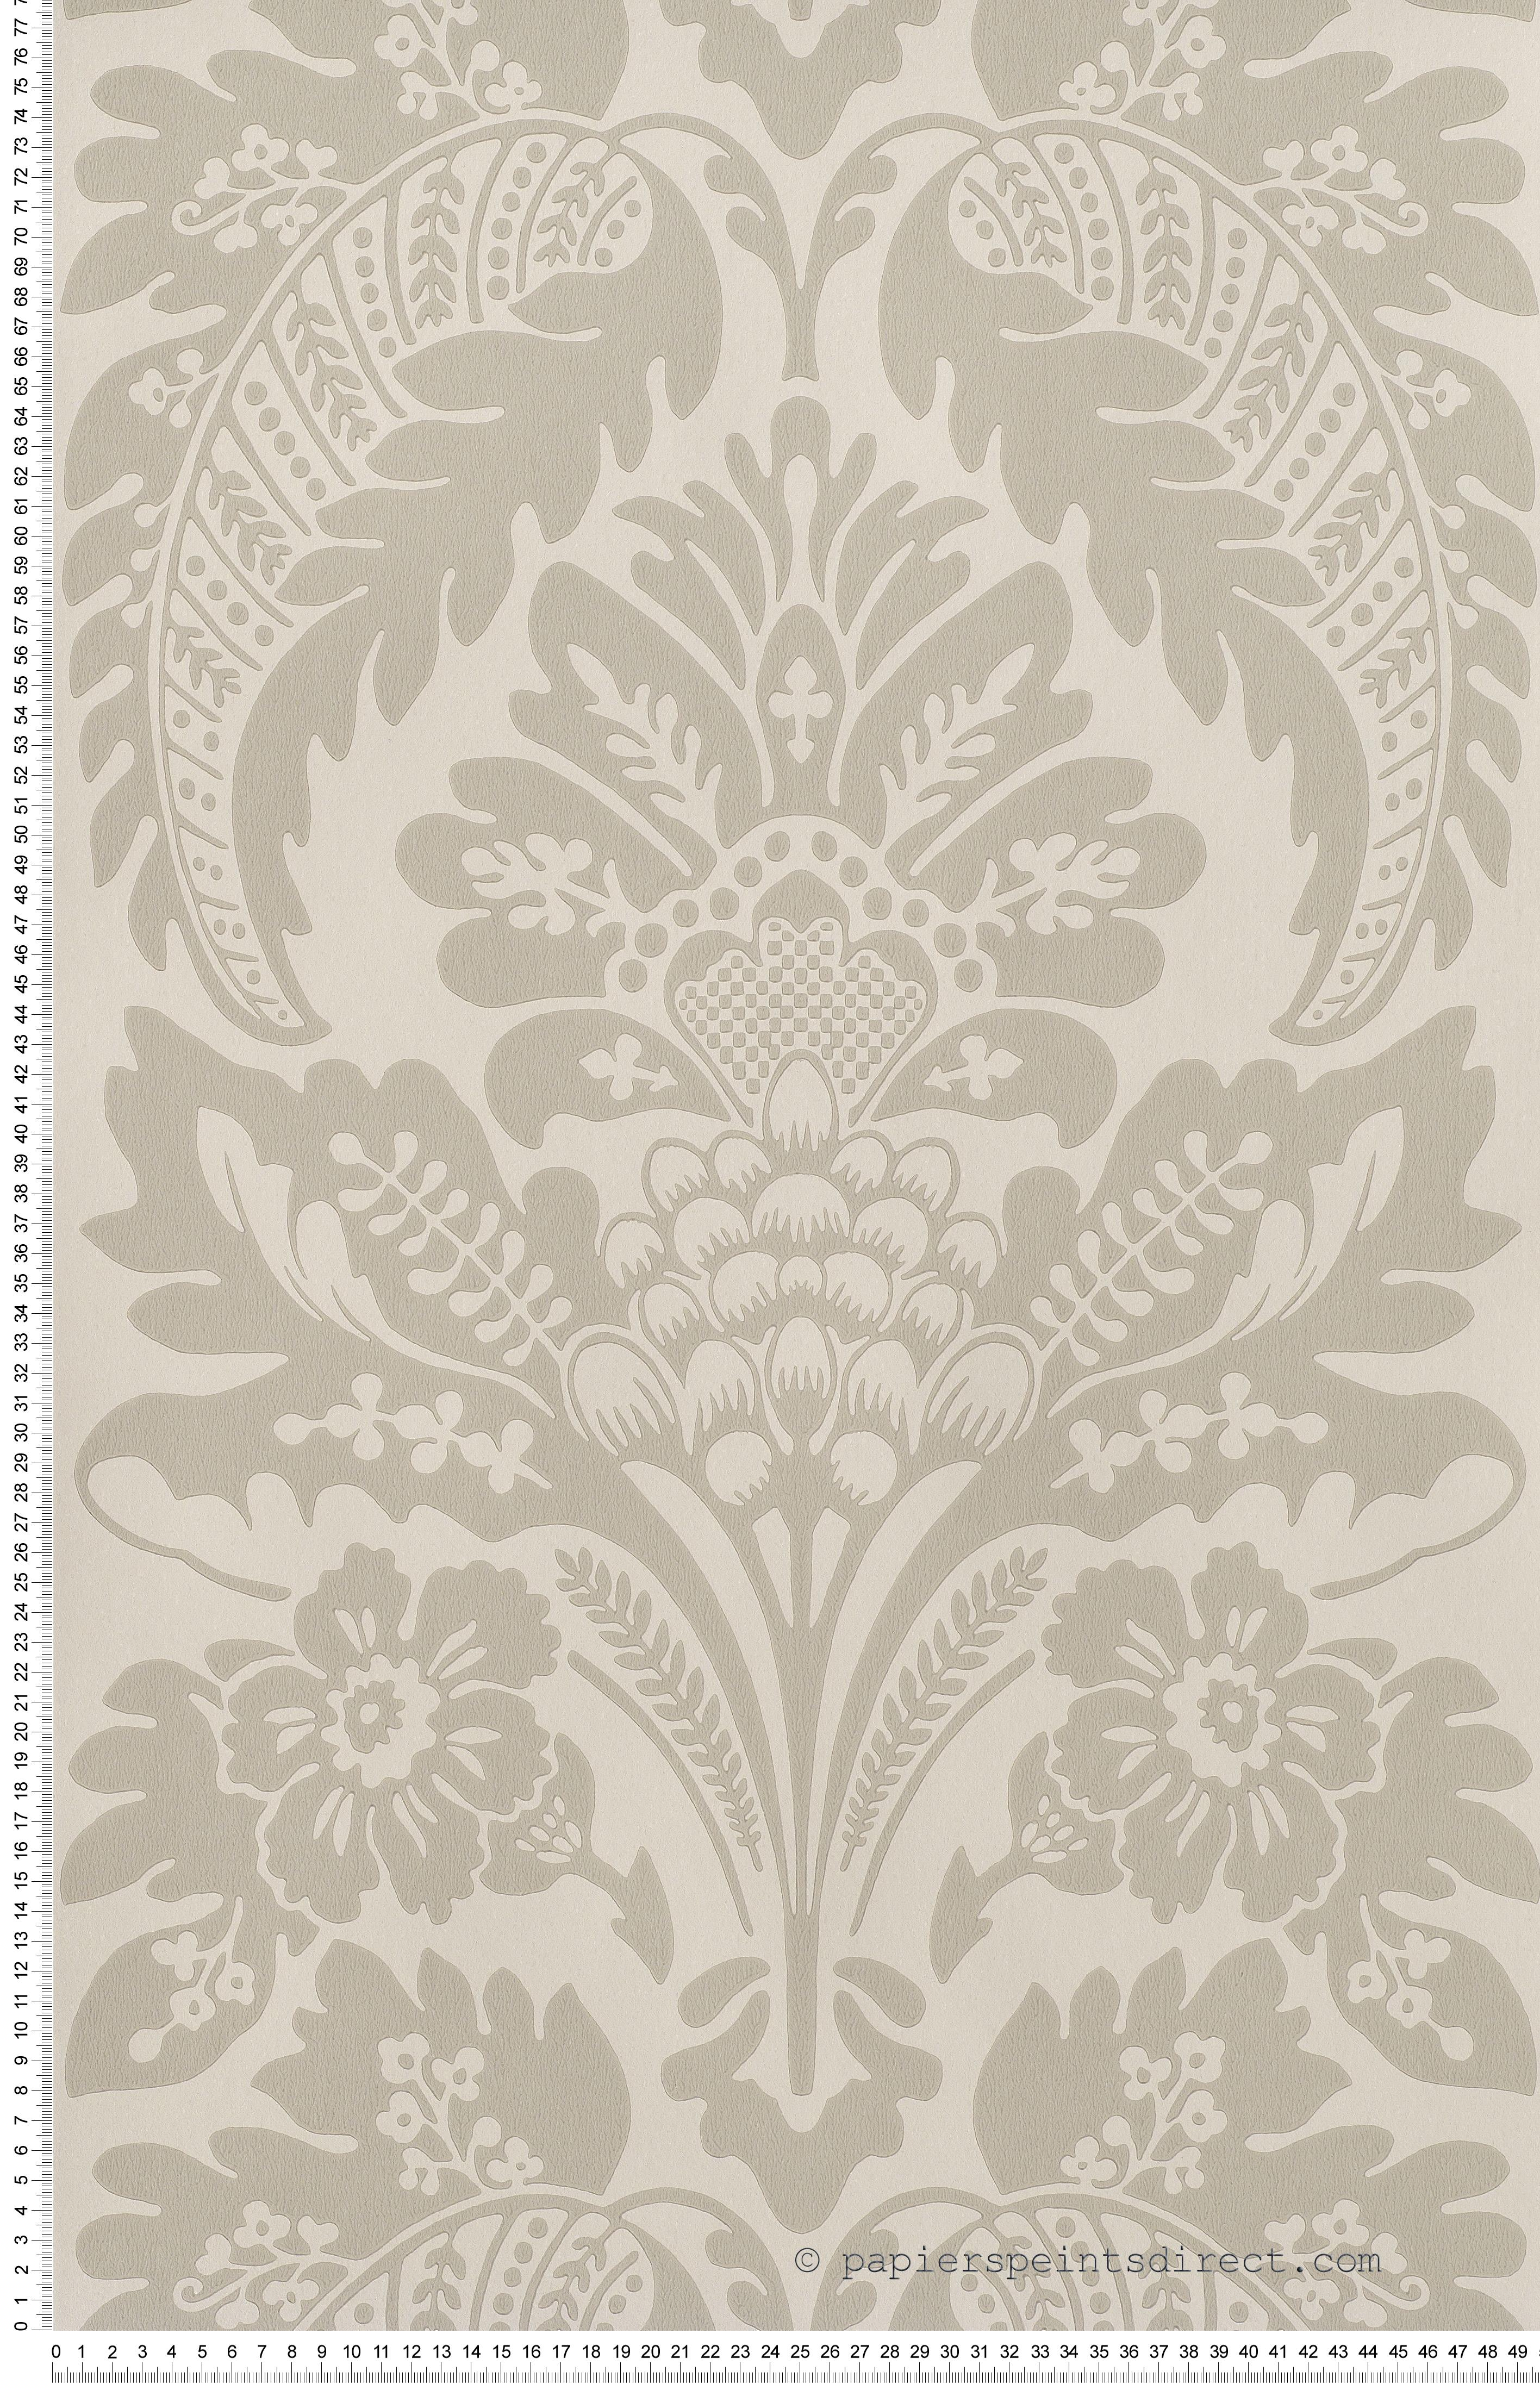 Wilton Drapery - papier peint London Wallpapers III